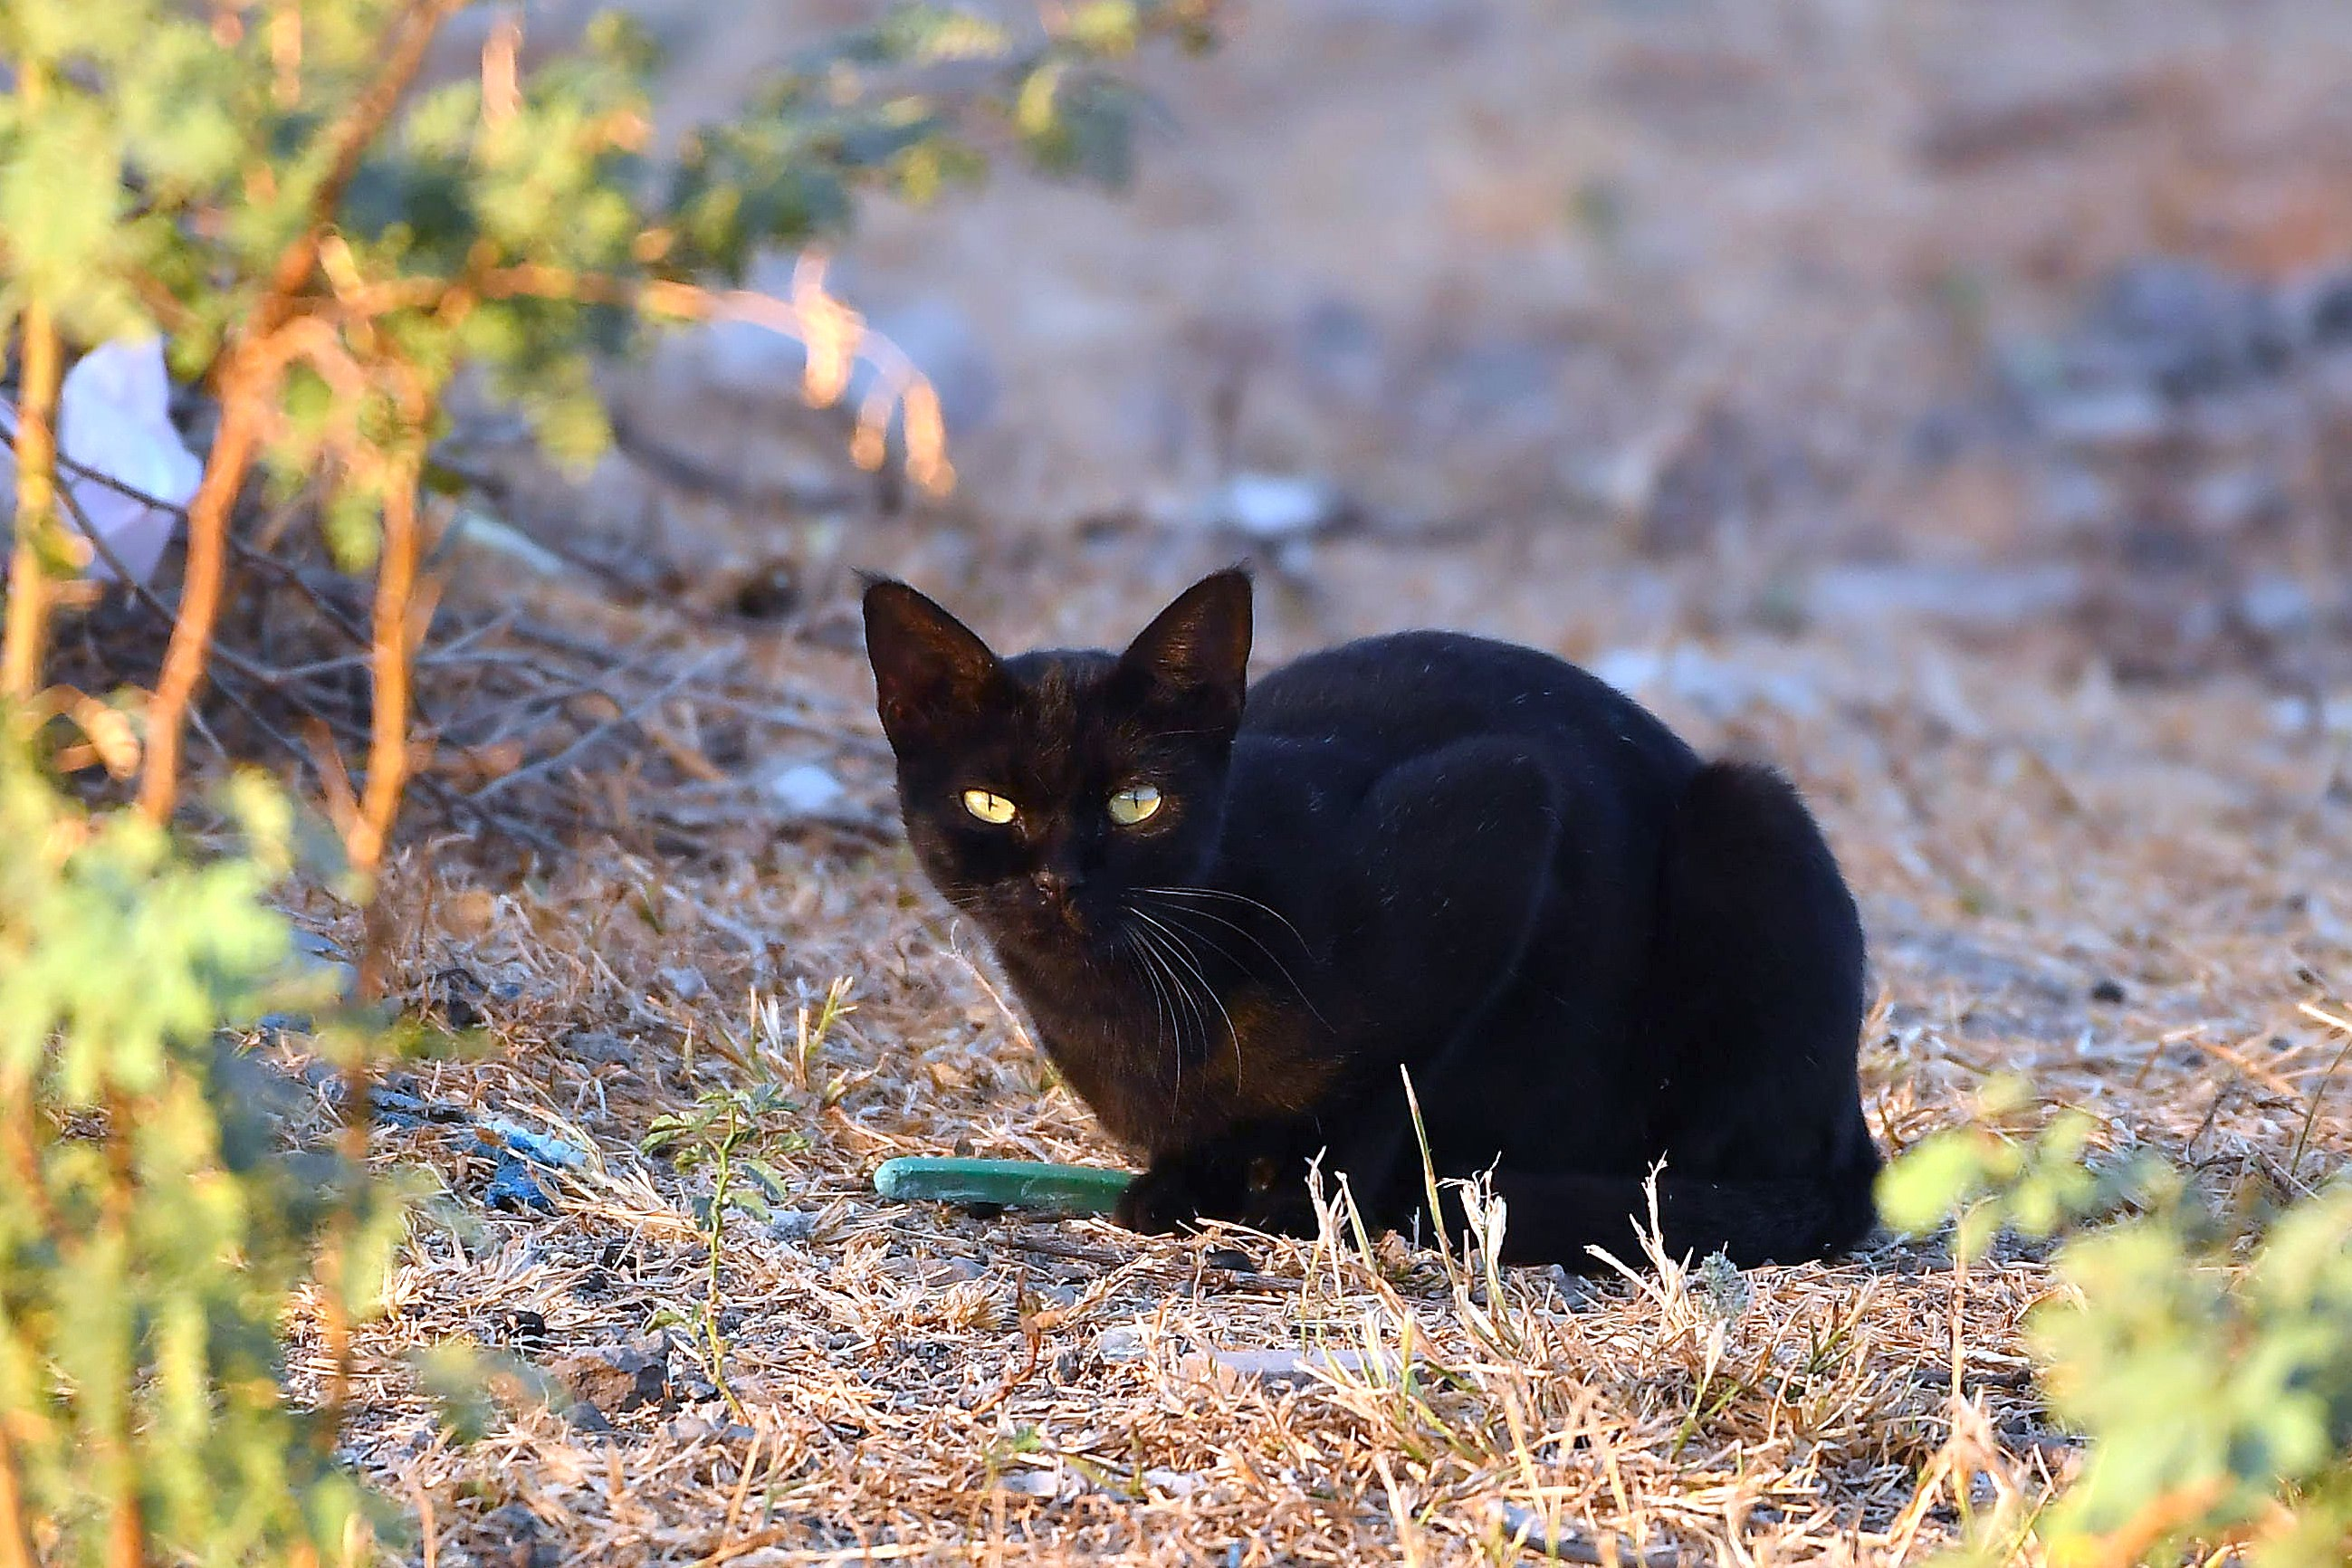 Many species of wild cats, such as this jungle cat seen near Jamnagar, Gujarat, have a dark morph. Photo: Urmil Jhaveri  Black cats go out and about their lives during the day unlike their spotted siblings Cover photo: Dheerajmnanda CC BY-SA 4.0